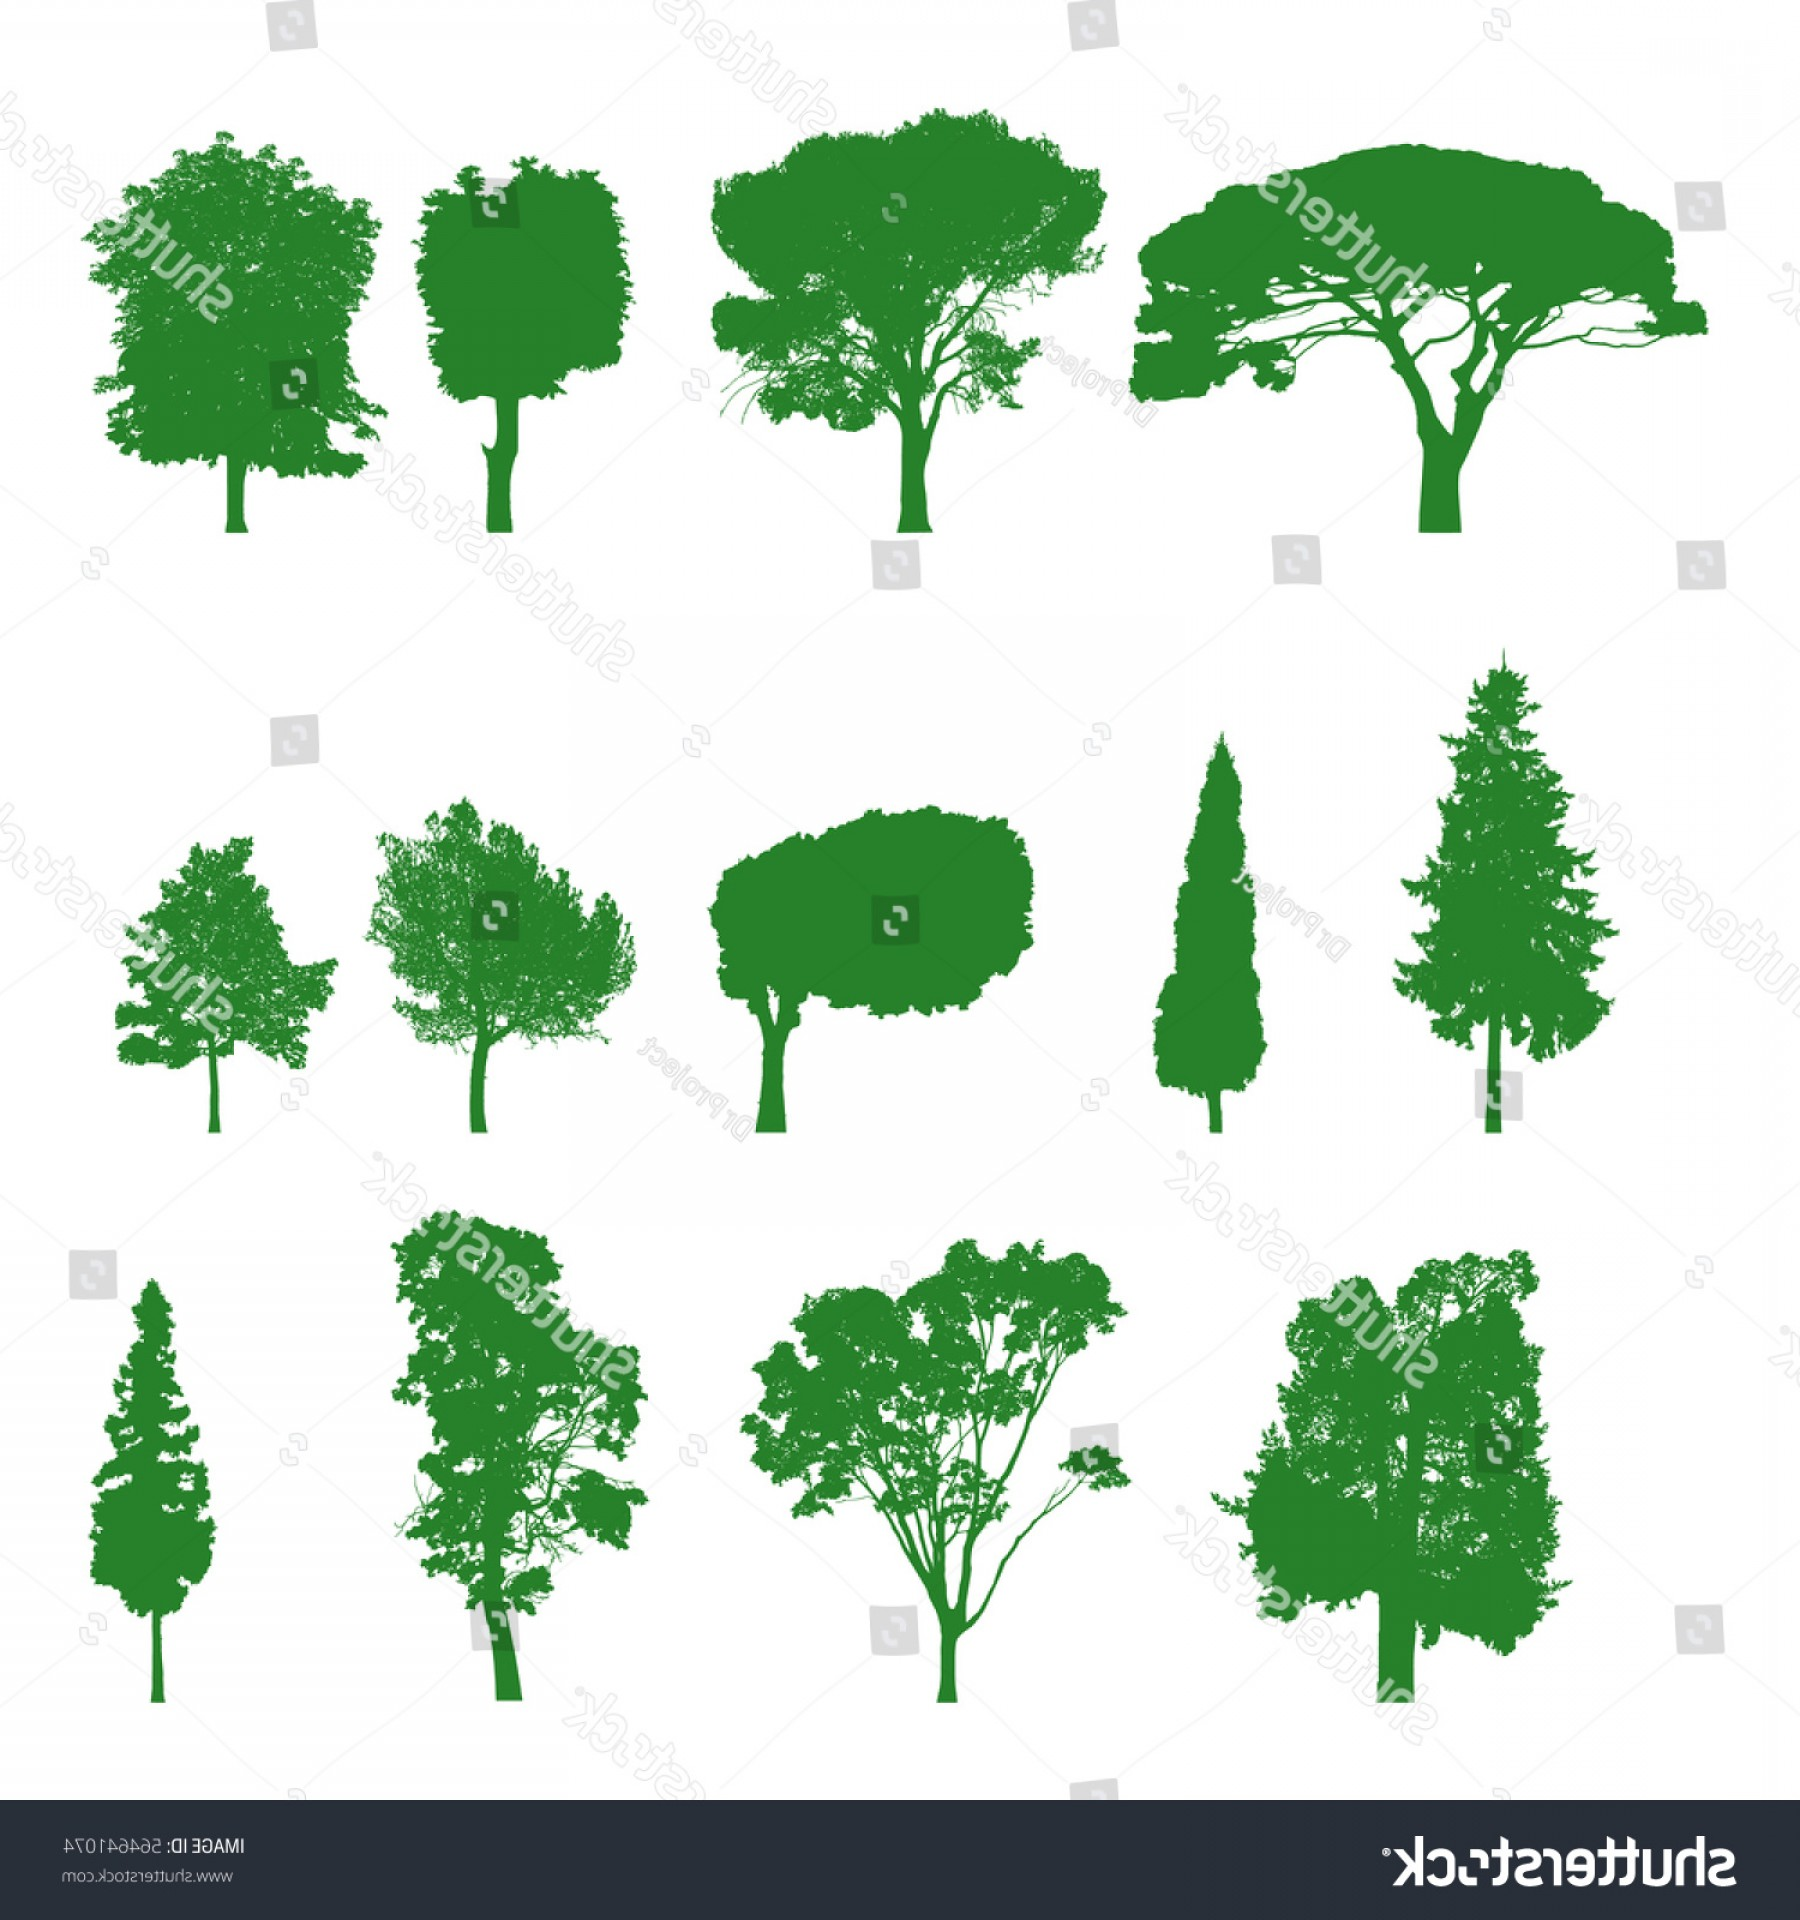 Sapling Vector Tree Silhouette Art: Vector Trees Silhouettes Green Big Set